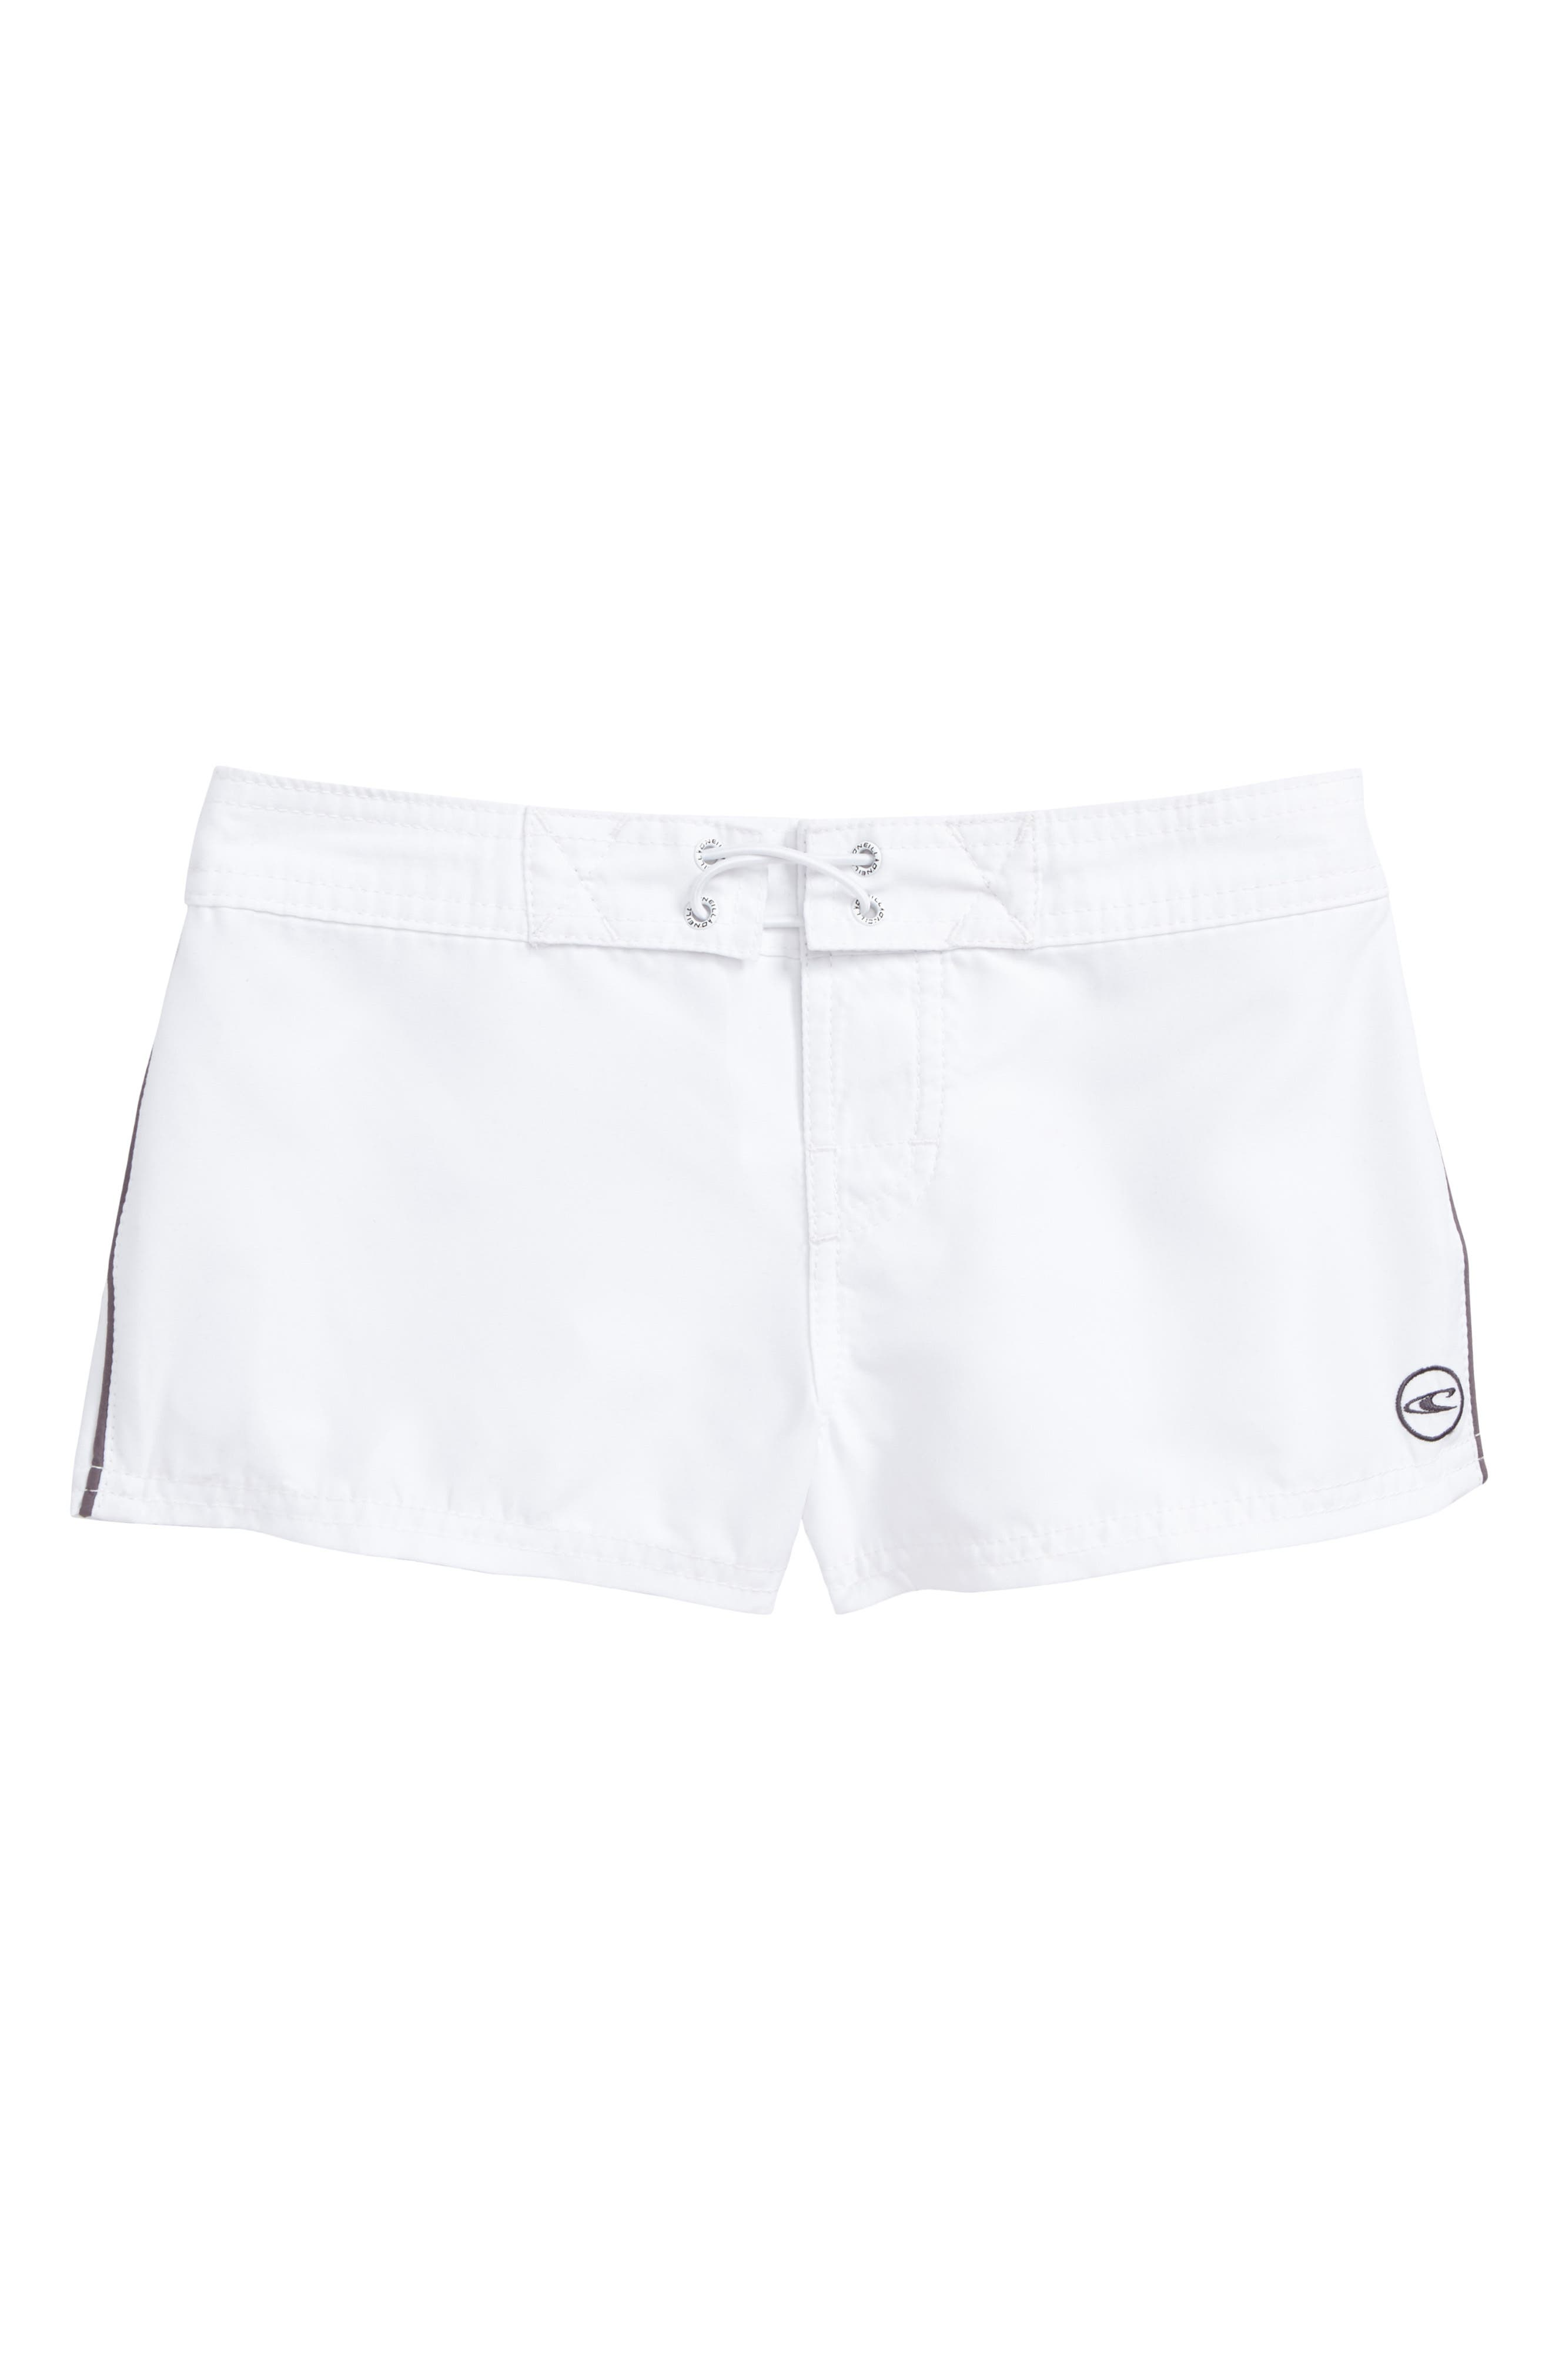 Salt Water Board Shorts,                         Main,                         color, White - Wht